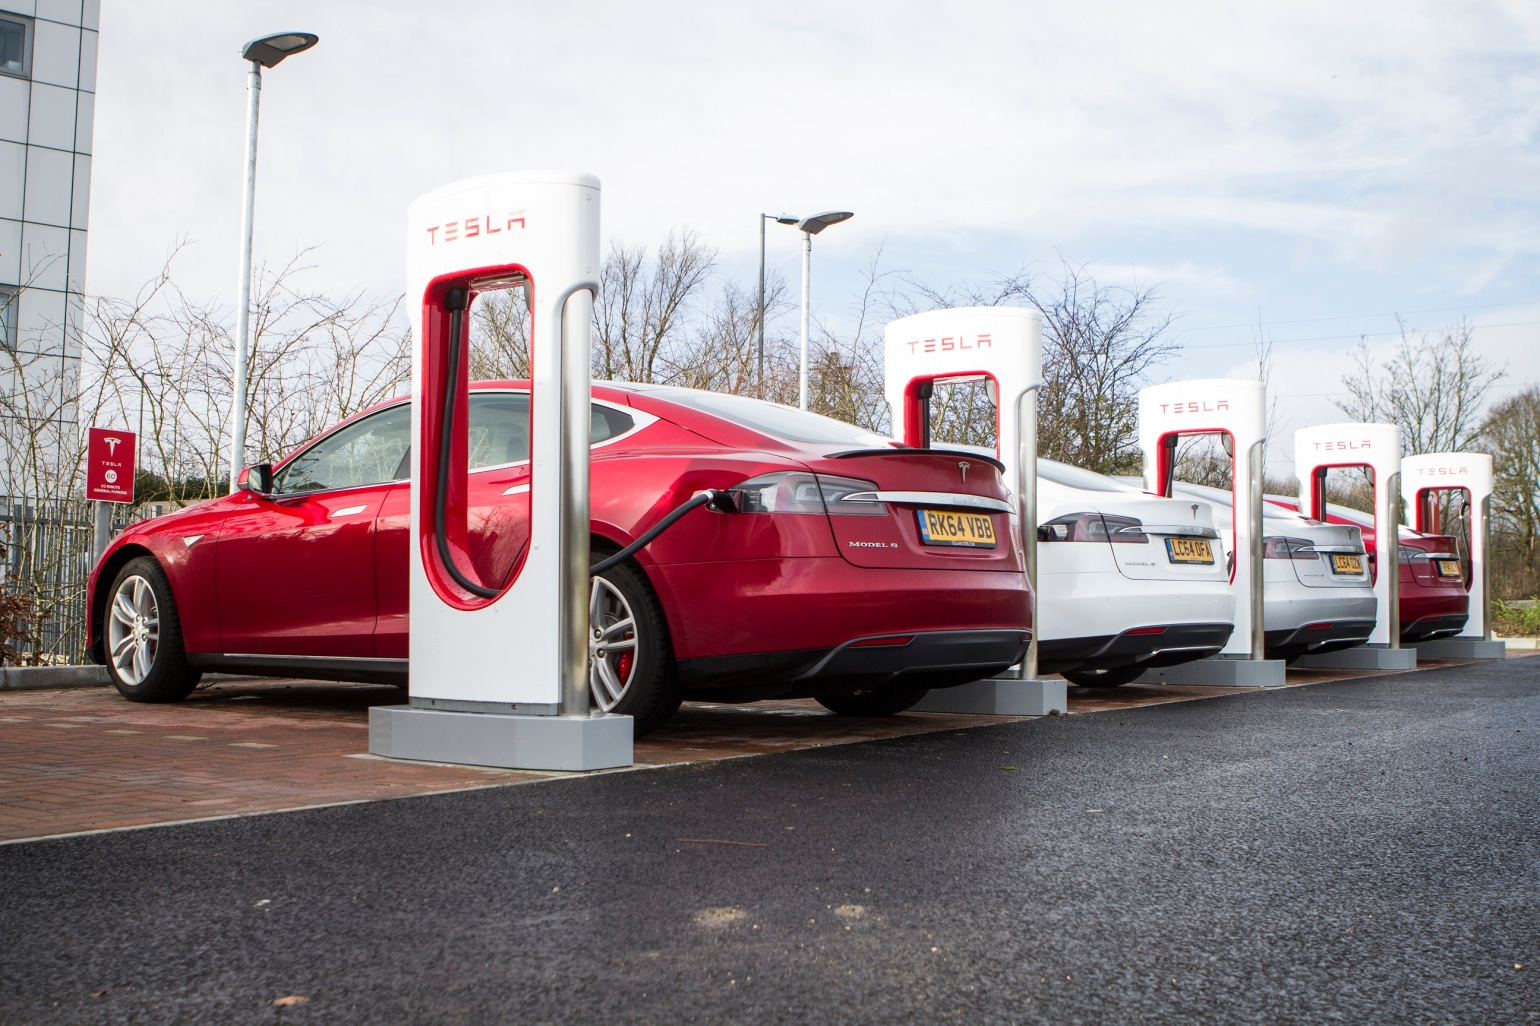 tesla-expands-destination-charging-network-in-europe-with-150-charging-points-106898_1.jpg